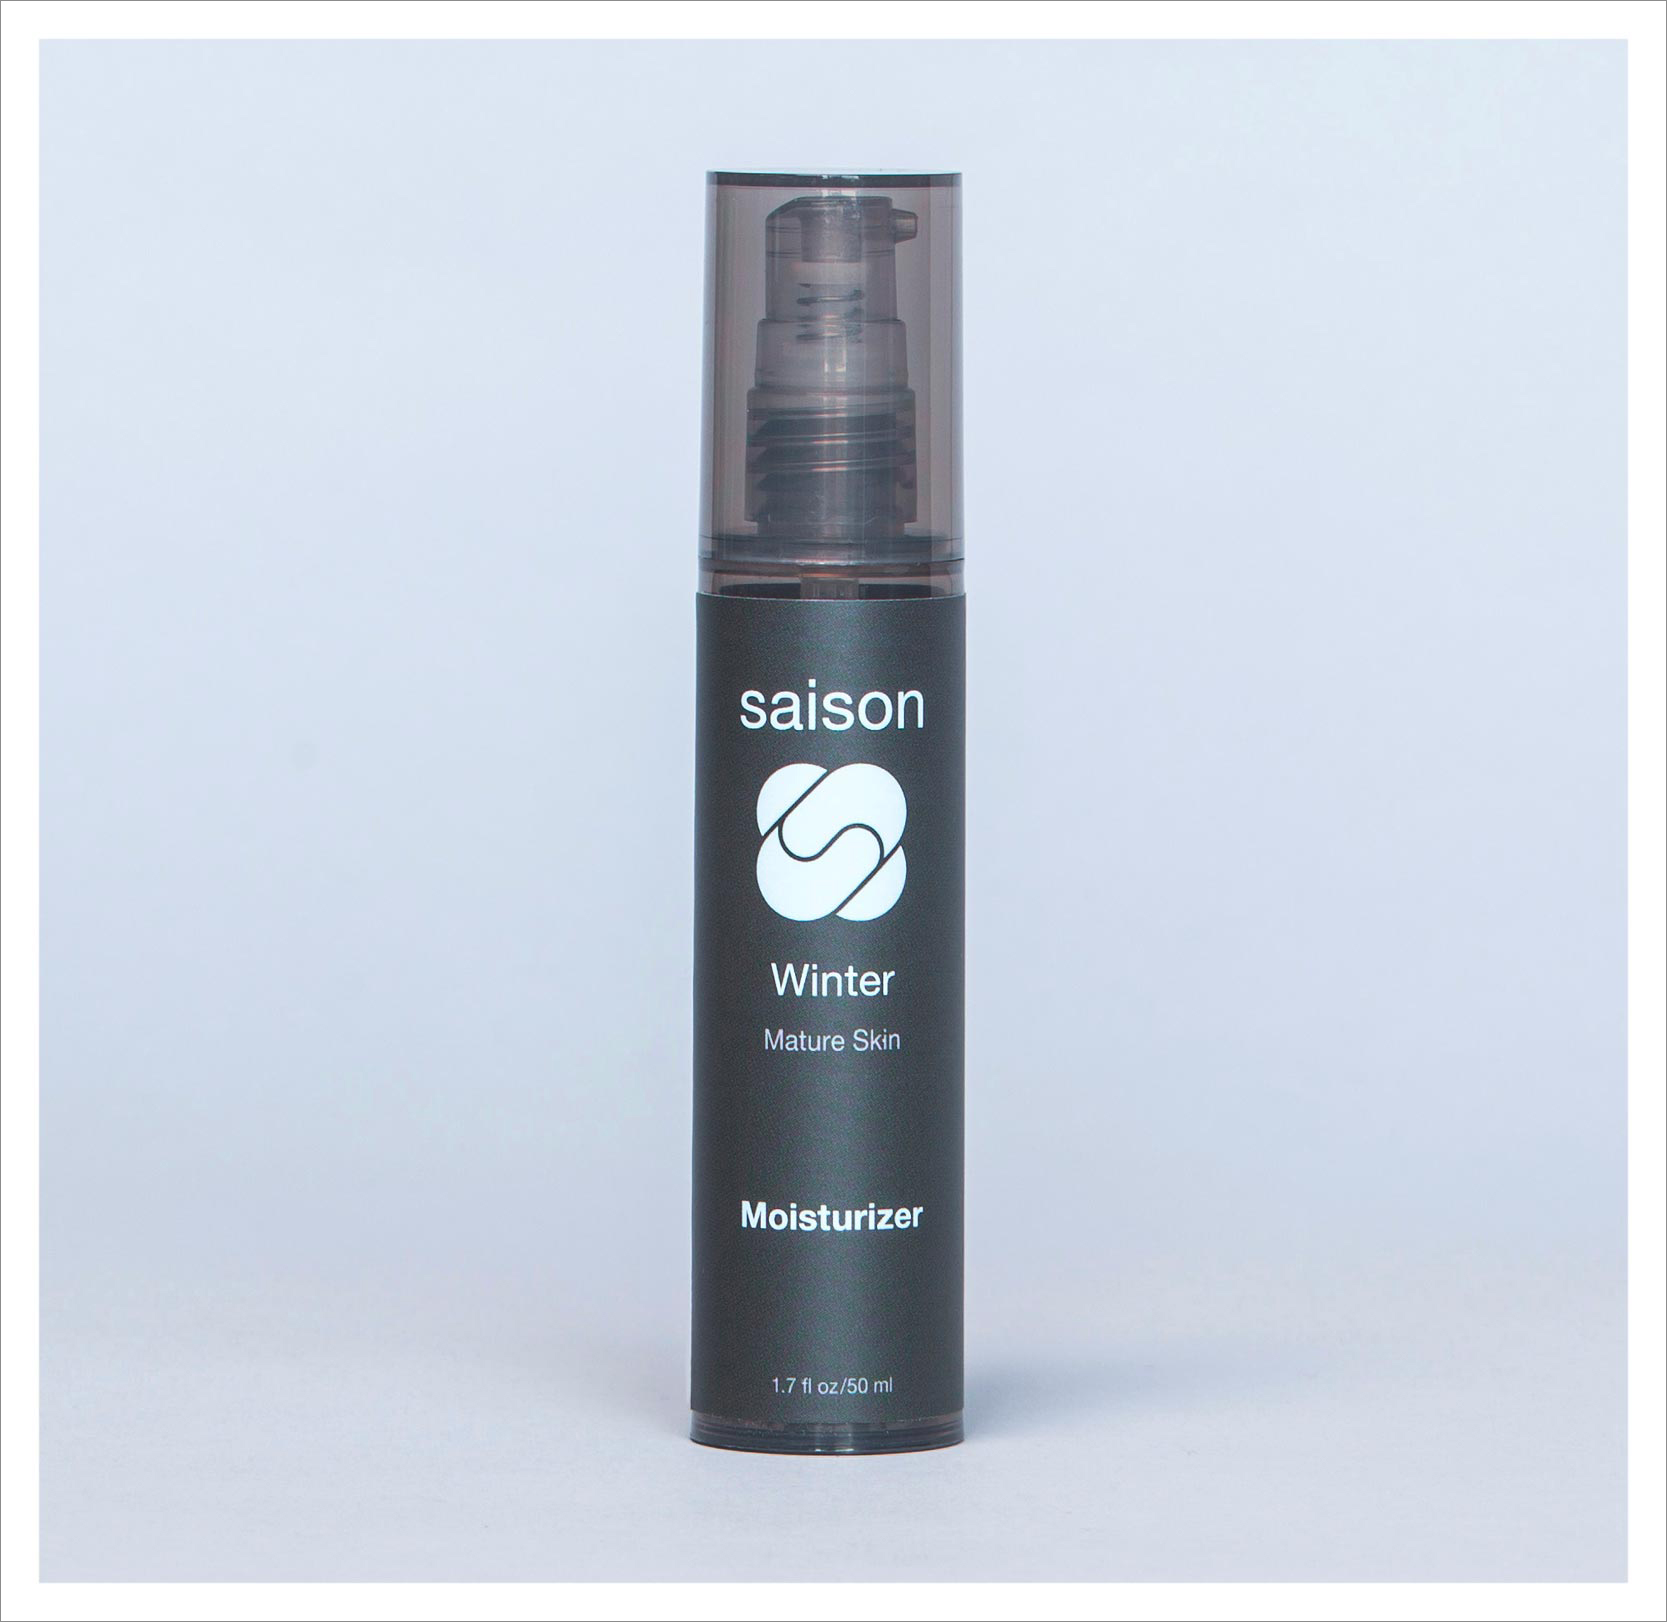 Saison Winter Moisturizer